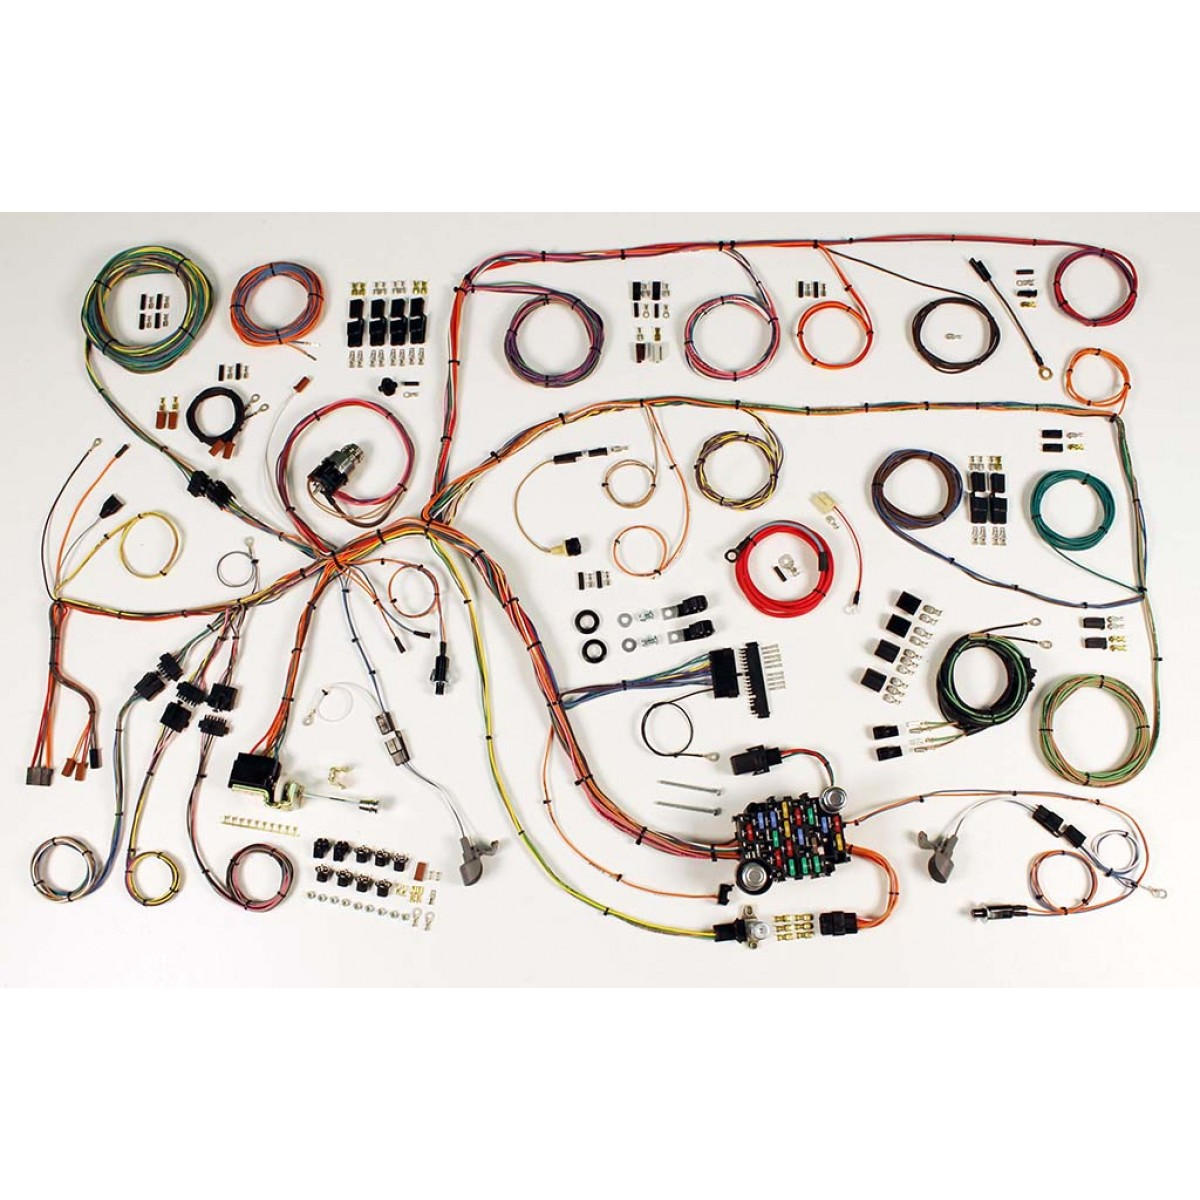 1964 Mercury Comet Wiring Library 1960 Ford Diagram Complete Harness Kit Falcon 1965